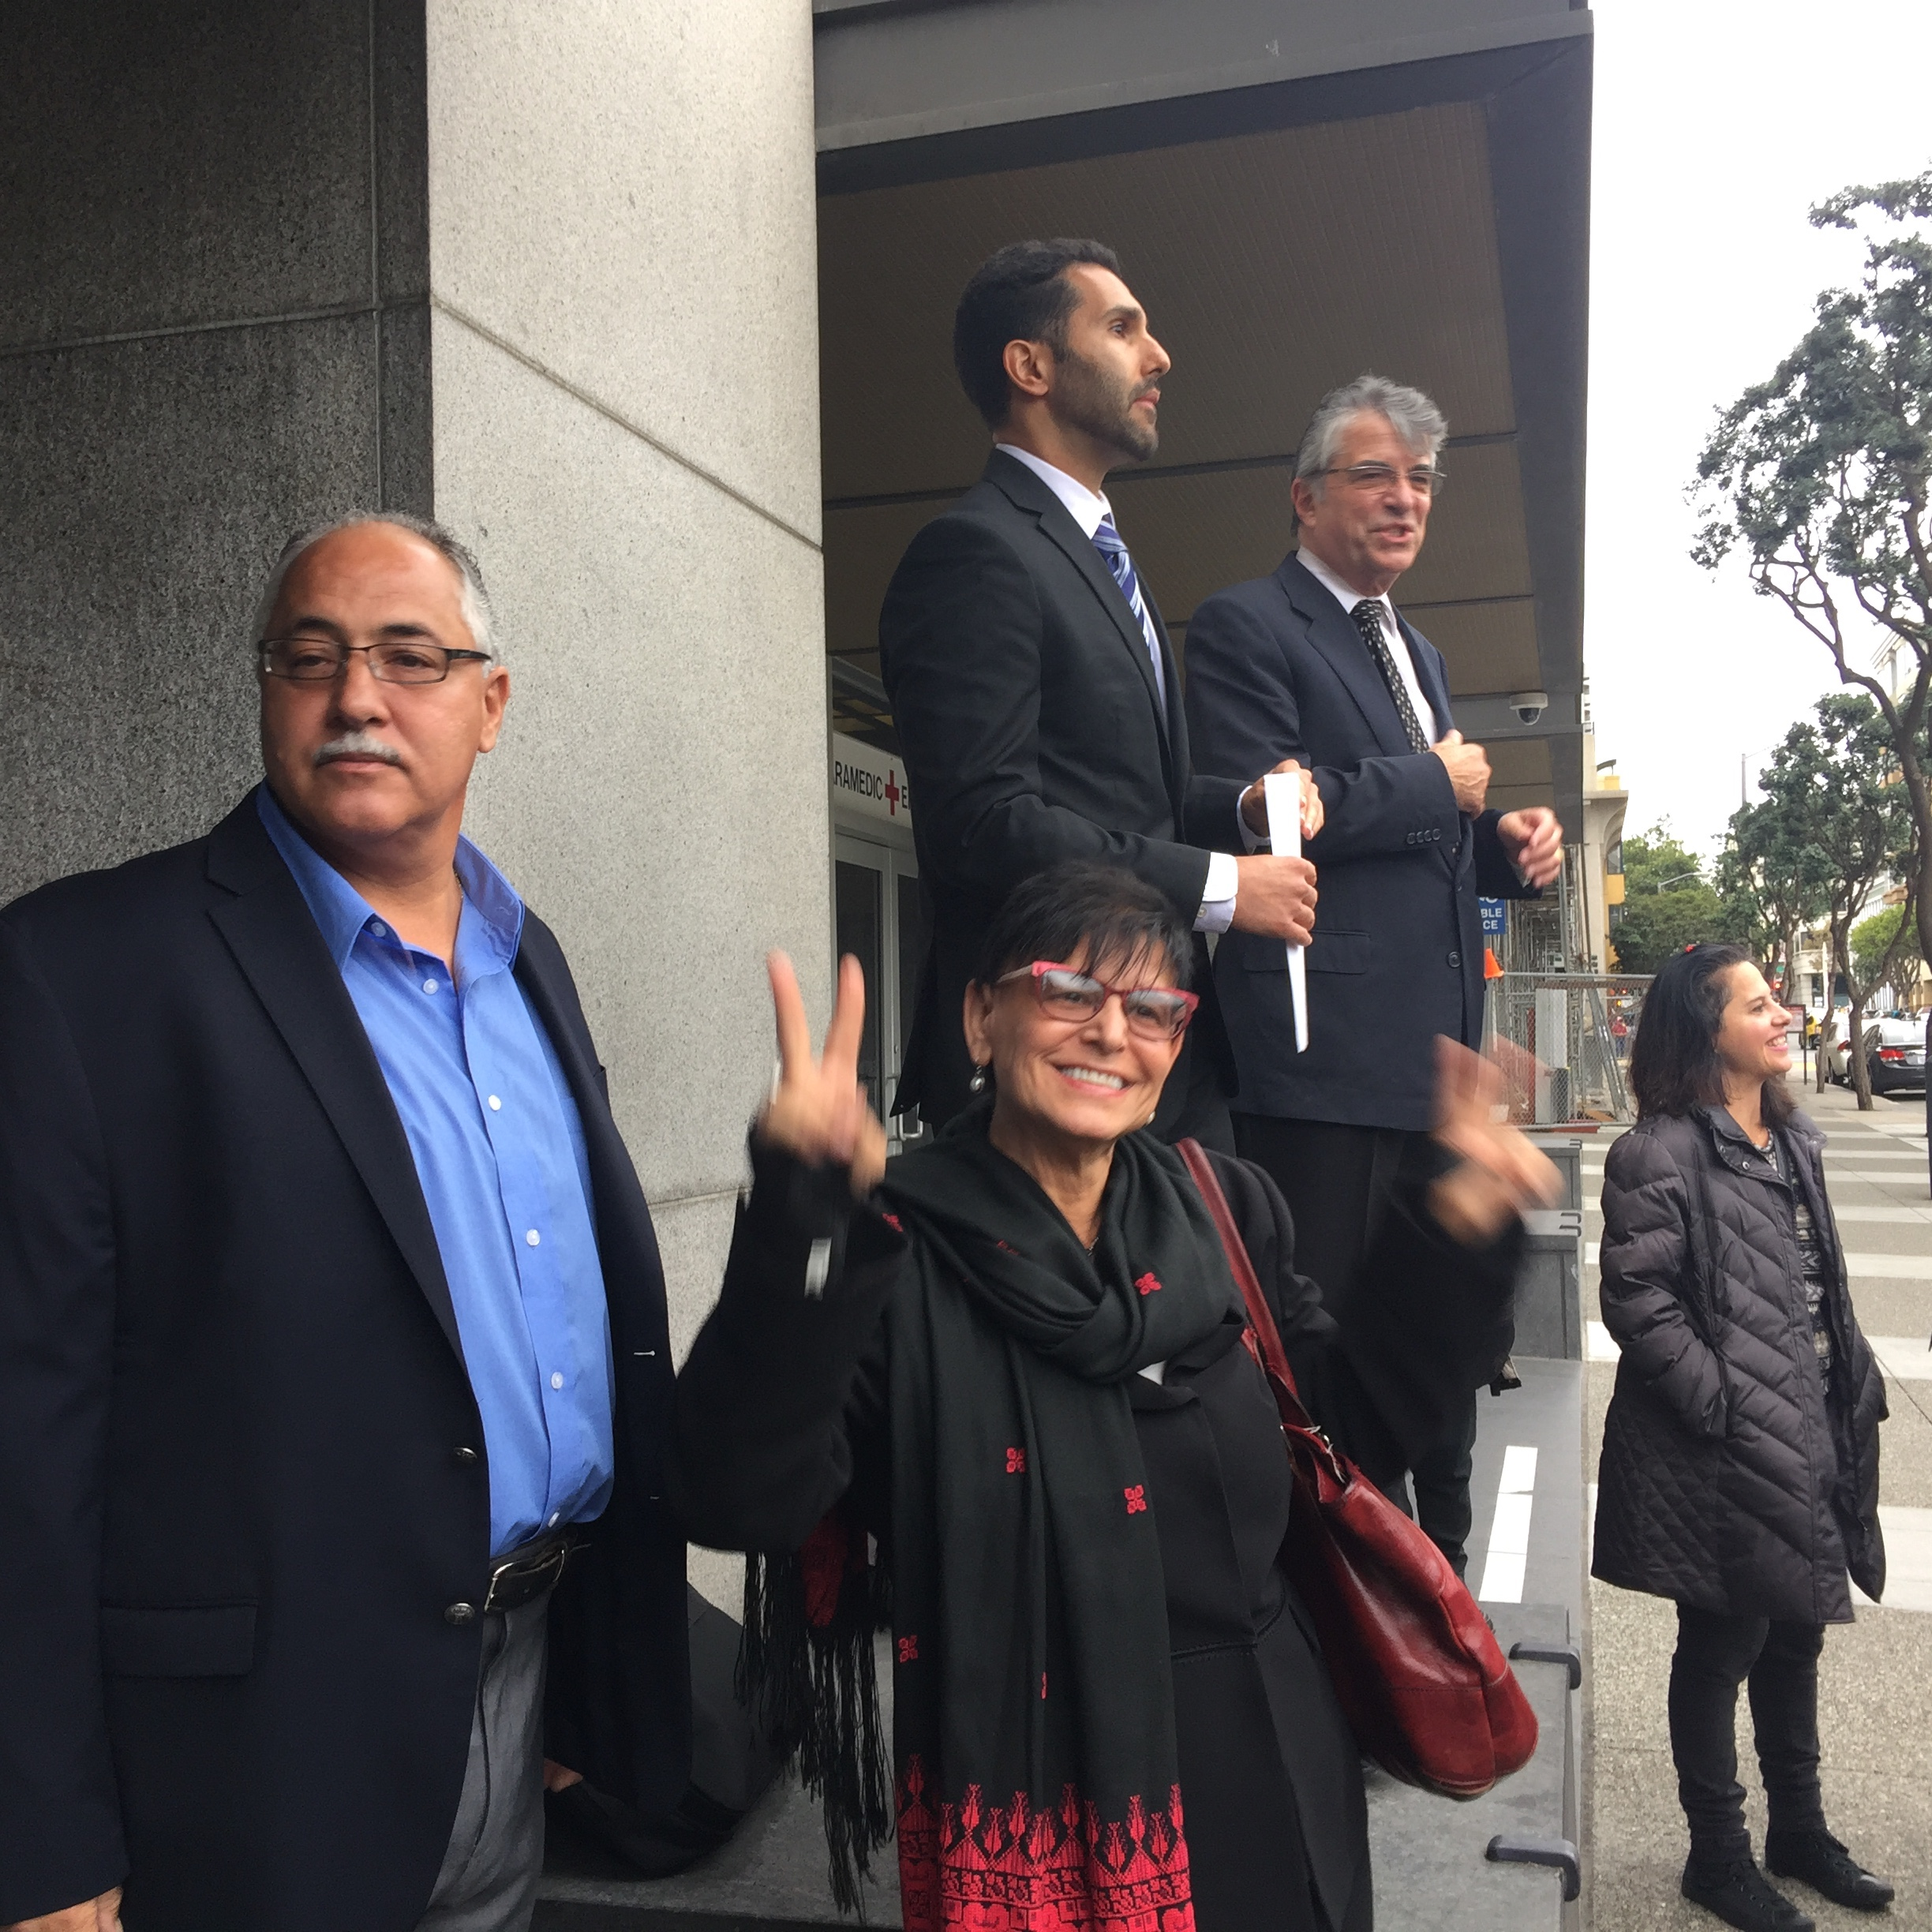 Dr. Abdulhadi on november 8 after Judge Orrick said he would dismiss the lawfare suit.